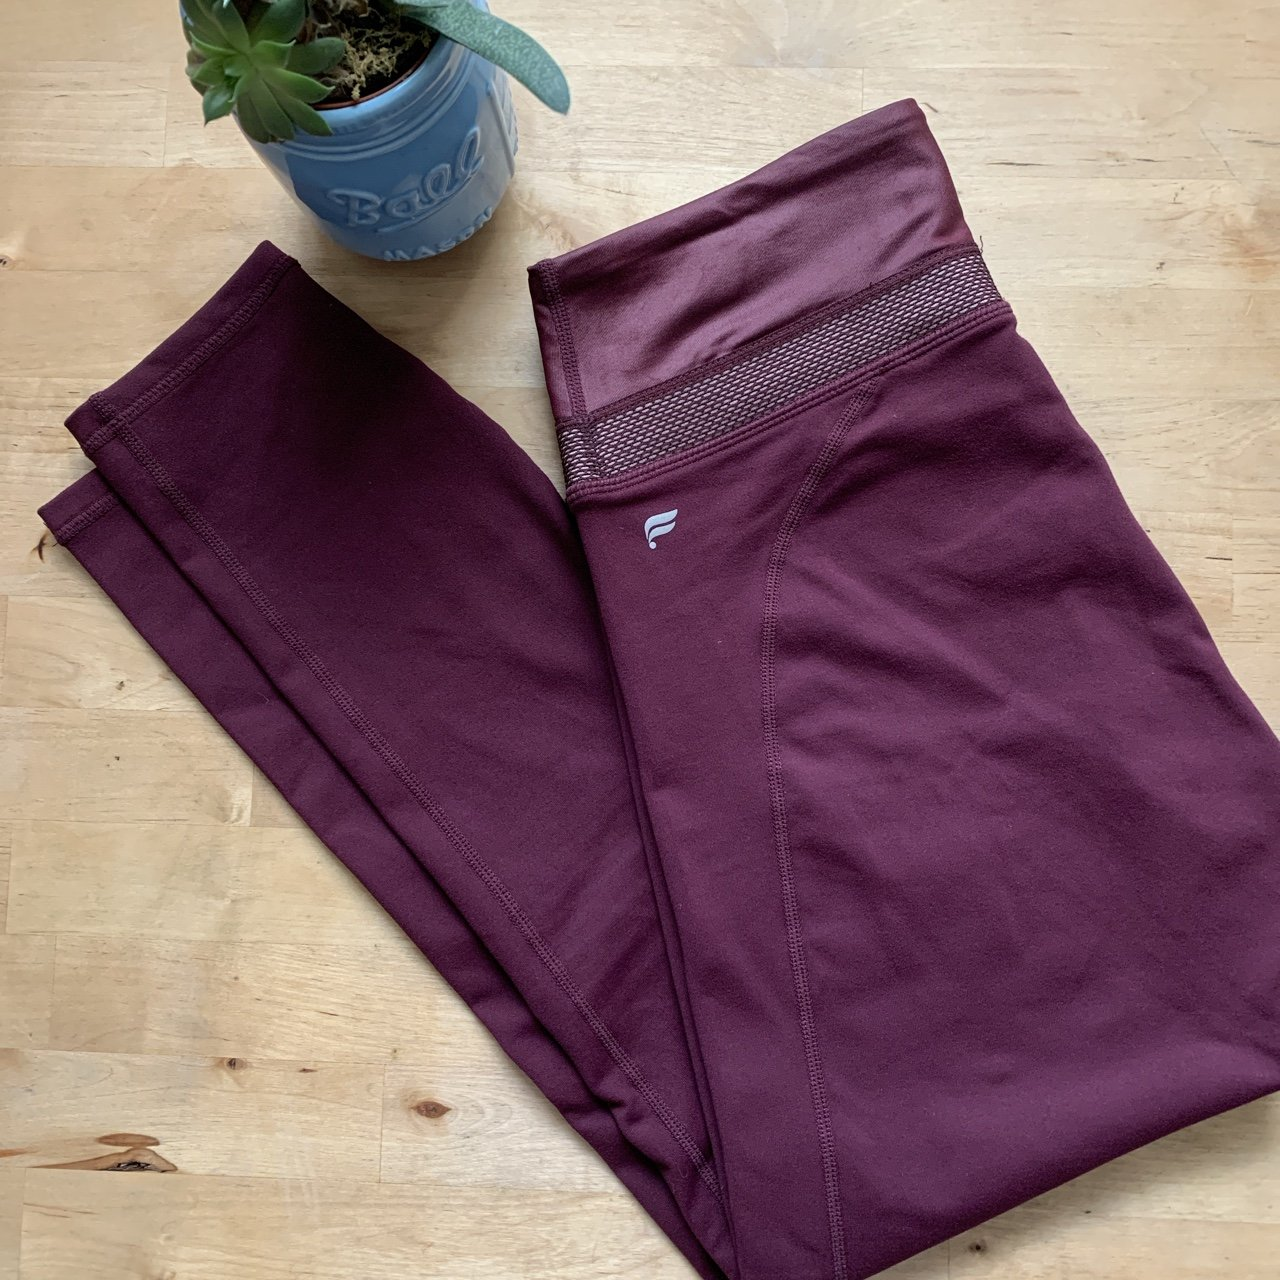 003782bed84e9 Fabletics High waisted Powerhold legging in burgundy. by the - Depop